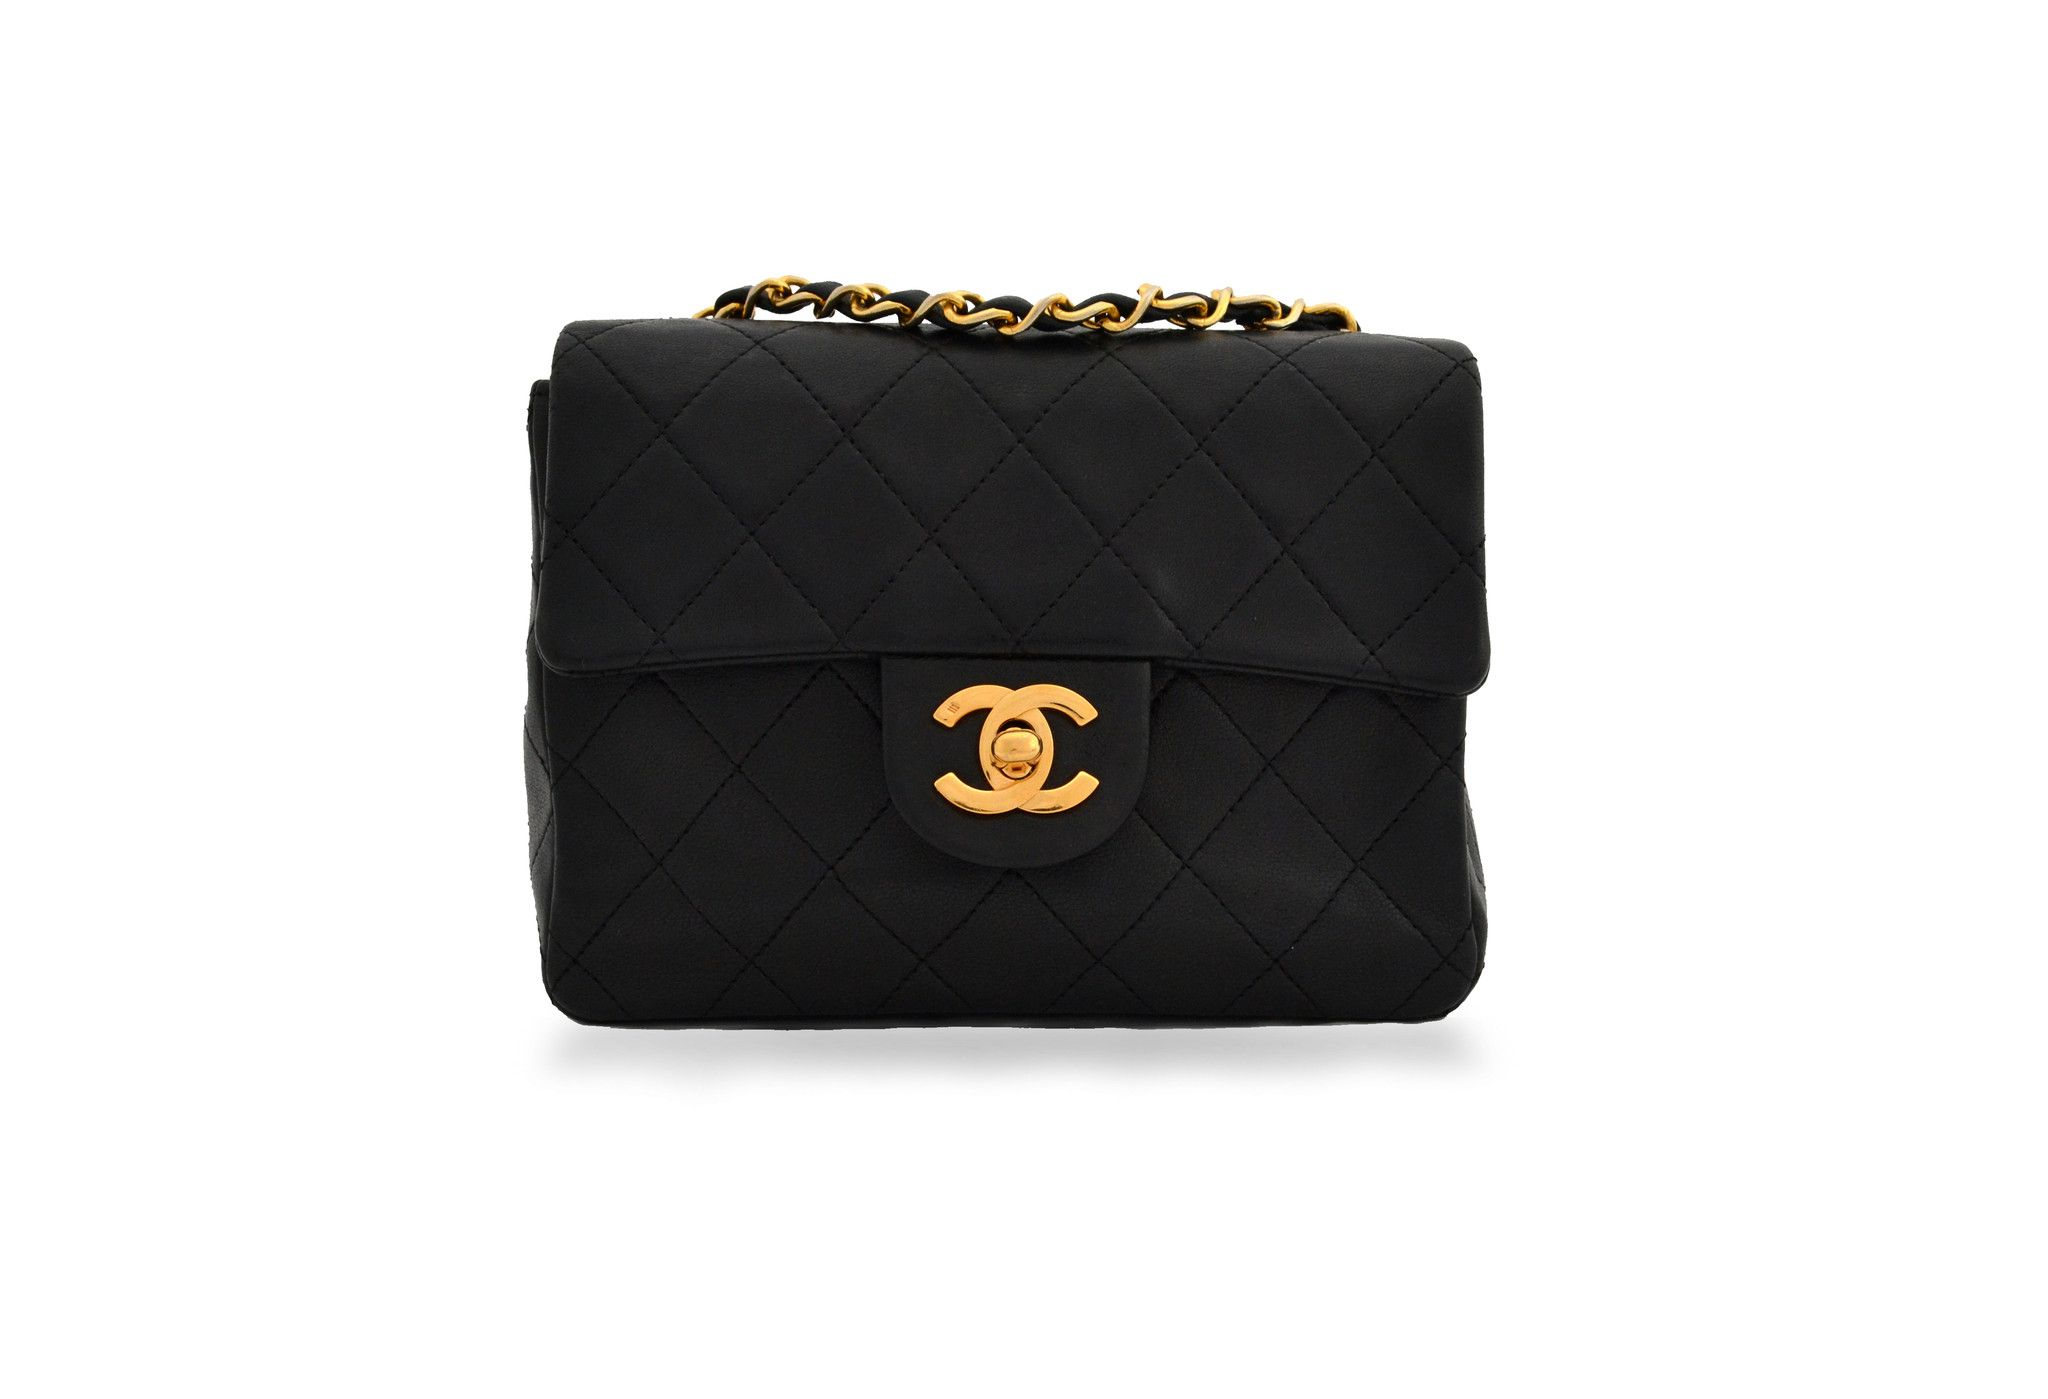 Designer Bags Free Uk Authenticity Chanel Vintage Bag Mini 2 55 Shoulder Flap In Lambskin From District Authentic